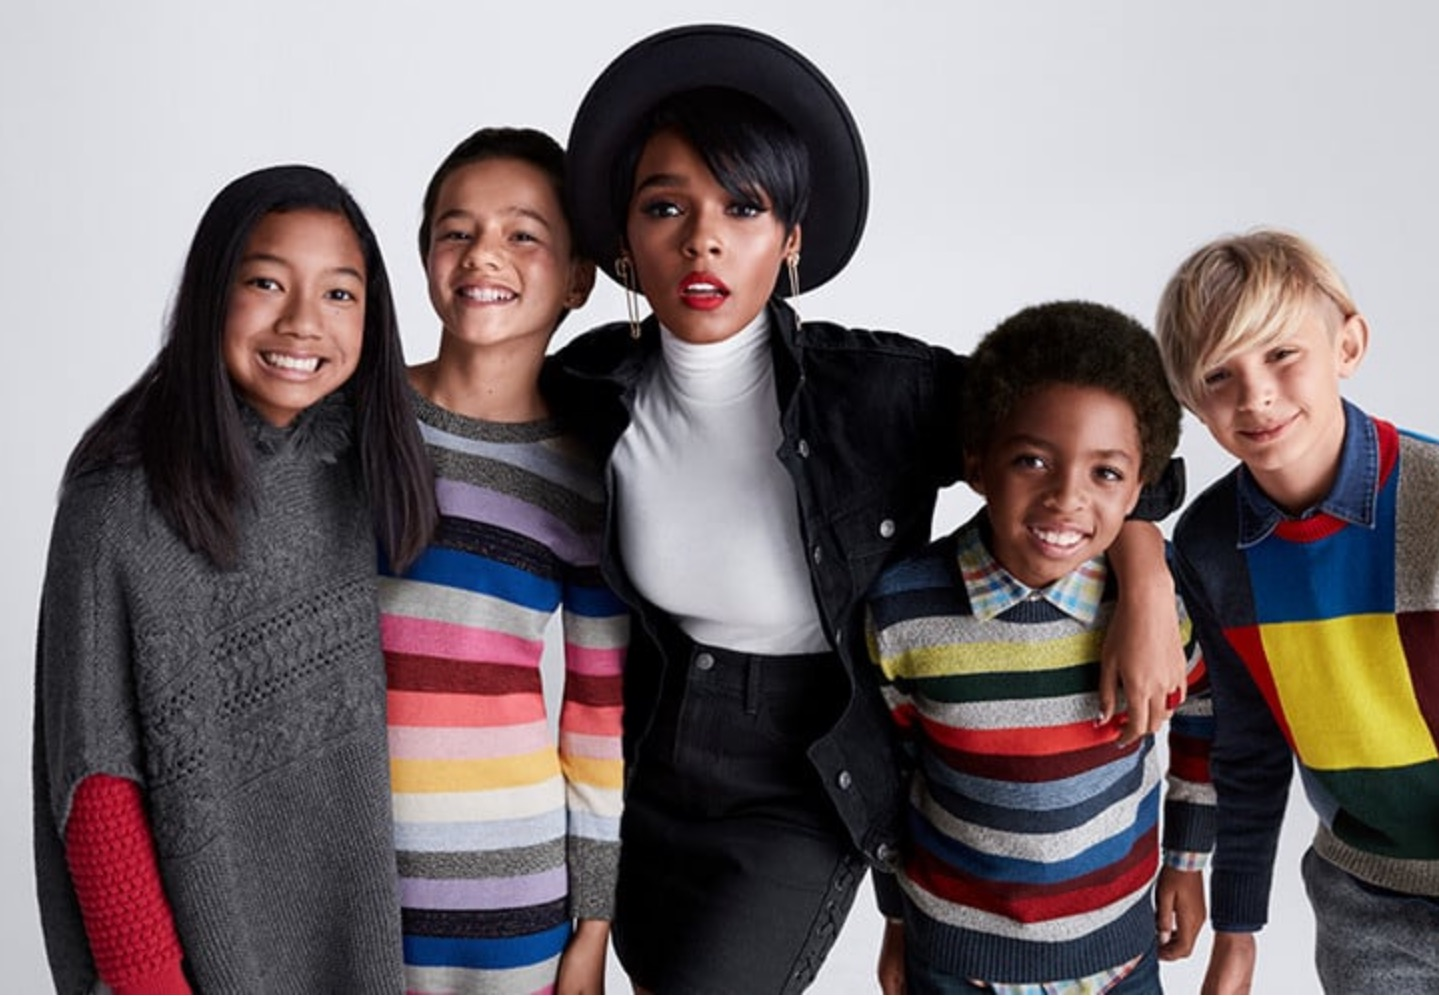 Janelle Monáe Celebrates Family Togetherness with Gap Style